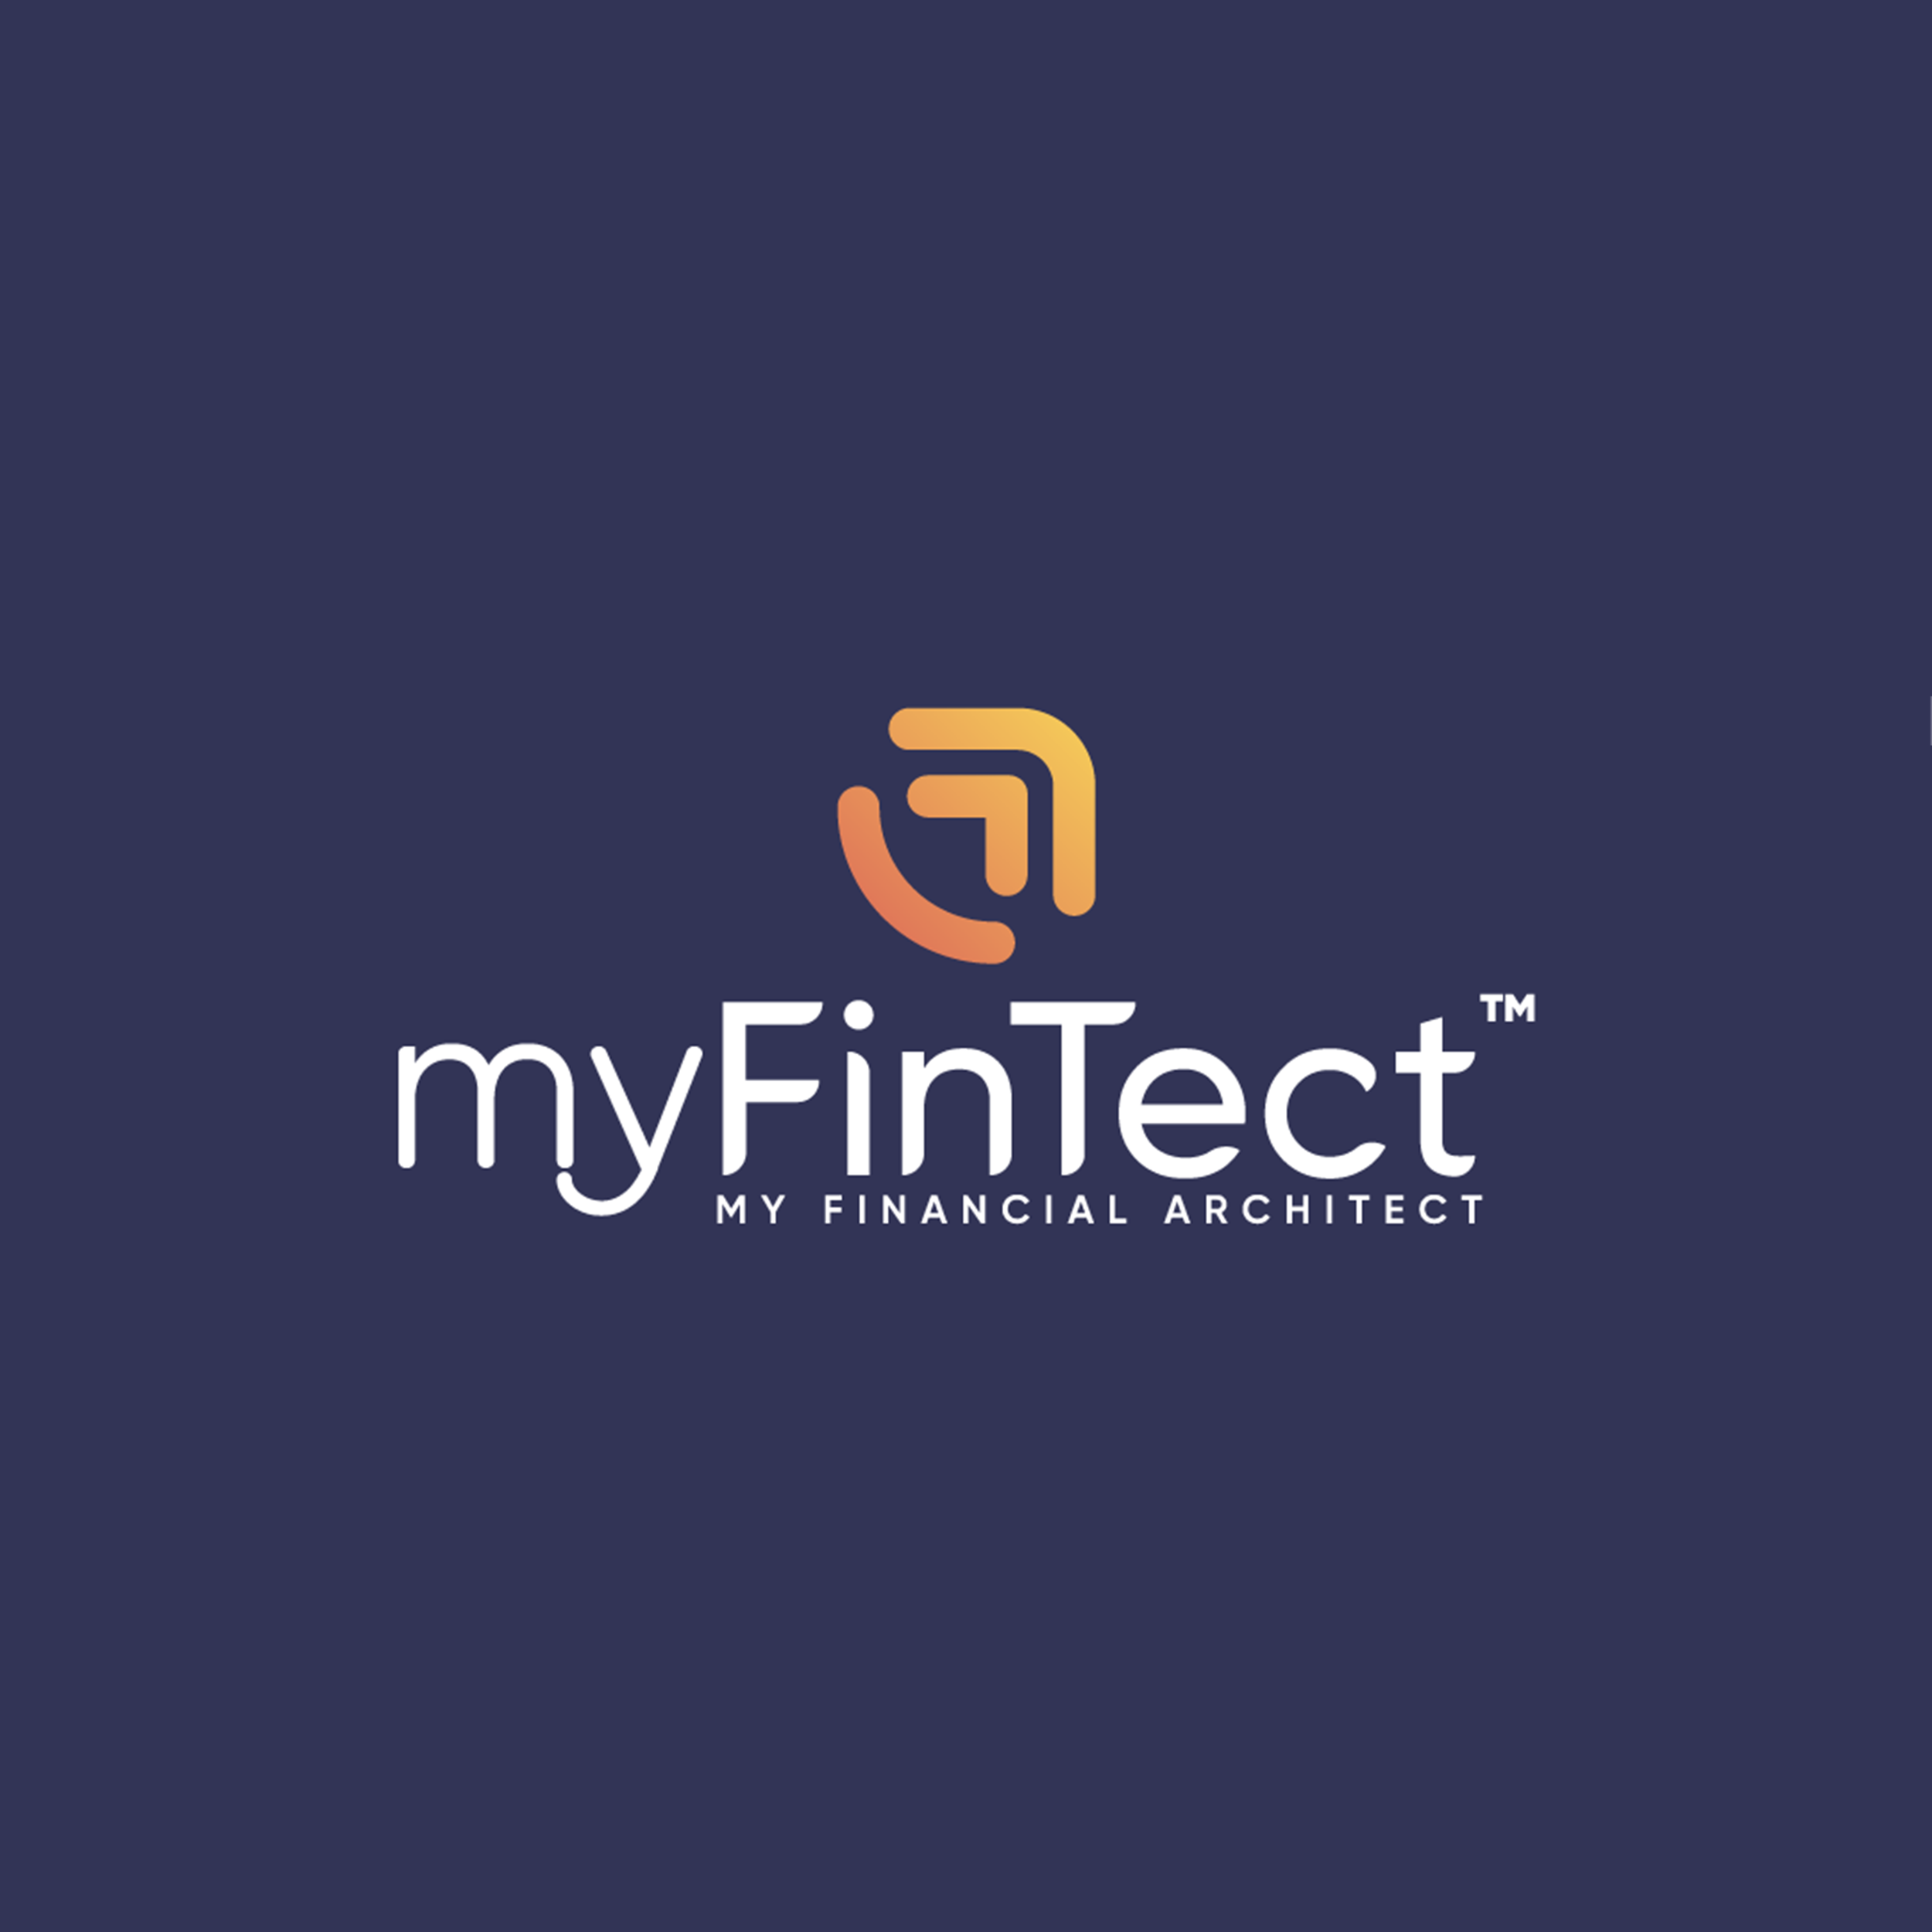 About the Writer: - About myFinTectTM is a financial planning and coaching company focused on the development and optimization of our client's financial lives. We are able to successfully achieve this by leveraging a lifestyle-focused approach, which is custom-designed for each individual meant to fit their needs, goals, and lifestyle. Our company is built over three foundational pillars: Financial Coaching, Financial Literacy, Financial Empowerment. We are committed to providing our clients with the right tools, mentorship, and education to allow them to build sustainable, profitable, and produc- tive financial well-being.For more information, visit www.myfintect.comFollow on Instagram: instagram.com/myfintectFollow on Twitter: twitter.com/myfintectFollow on Facebook: fb.me/myfintectSend an Email: hello@myfintect.com